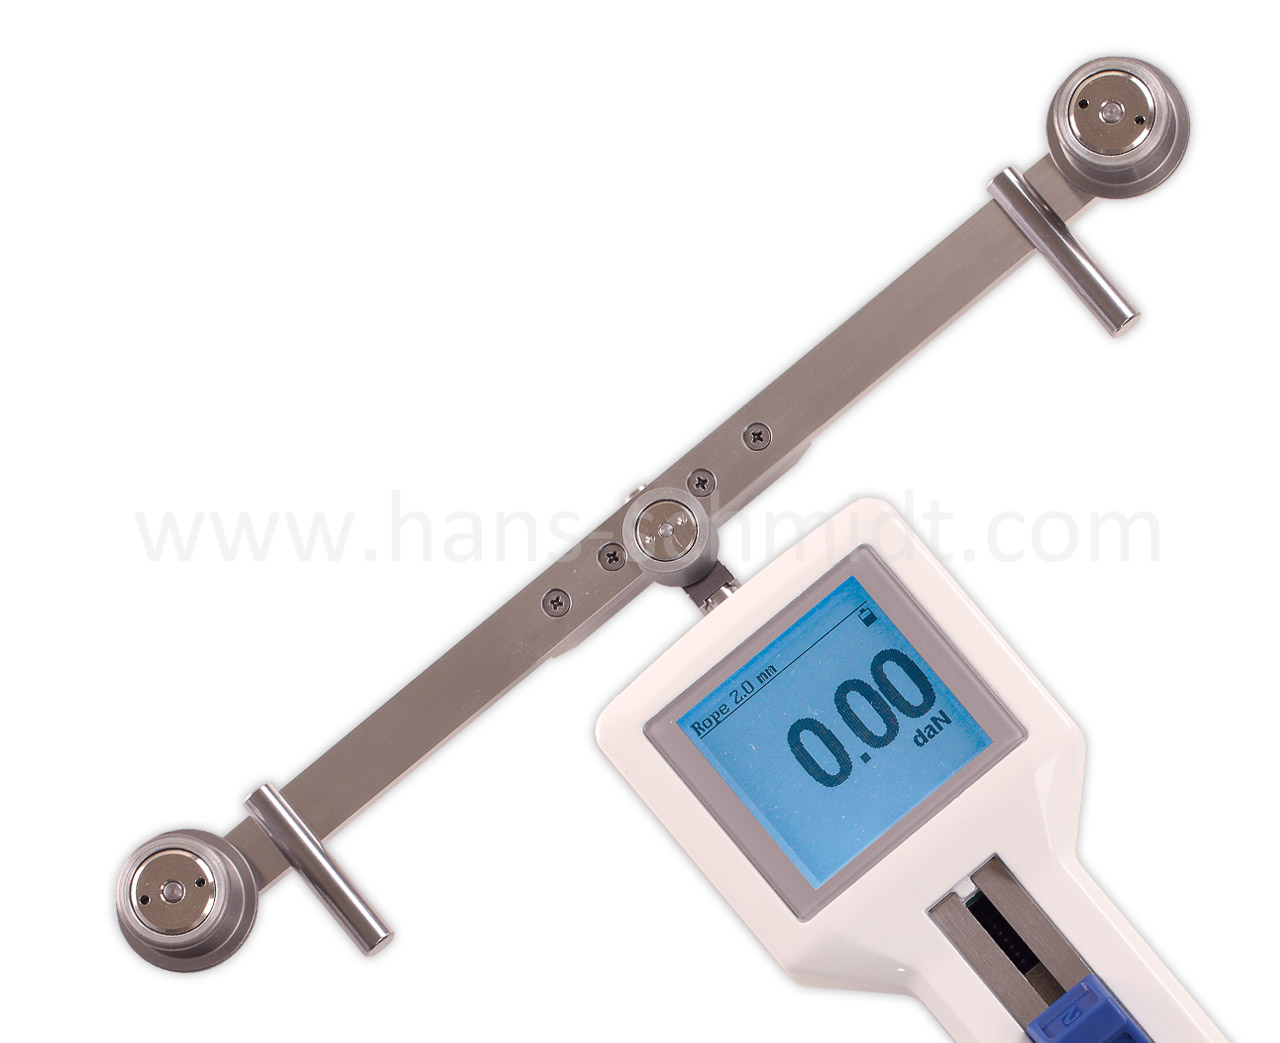 Tension Meter Dtx Hand Held Electronic Device Hans Schmidt Code 3 Led X 2100 Wiring Diagram Zugspannungsmesser 60k V1